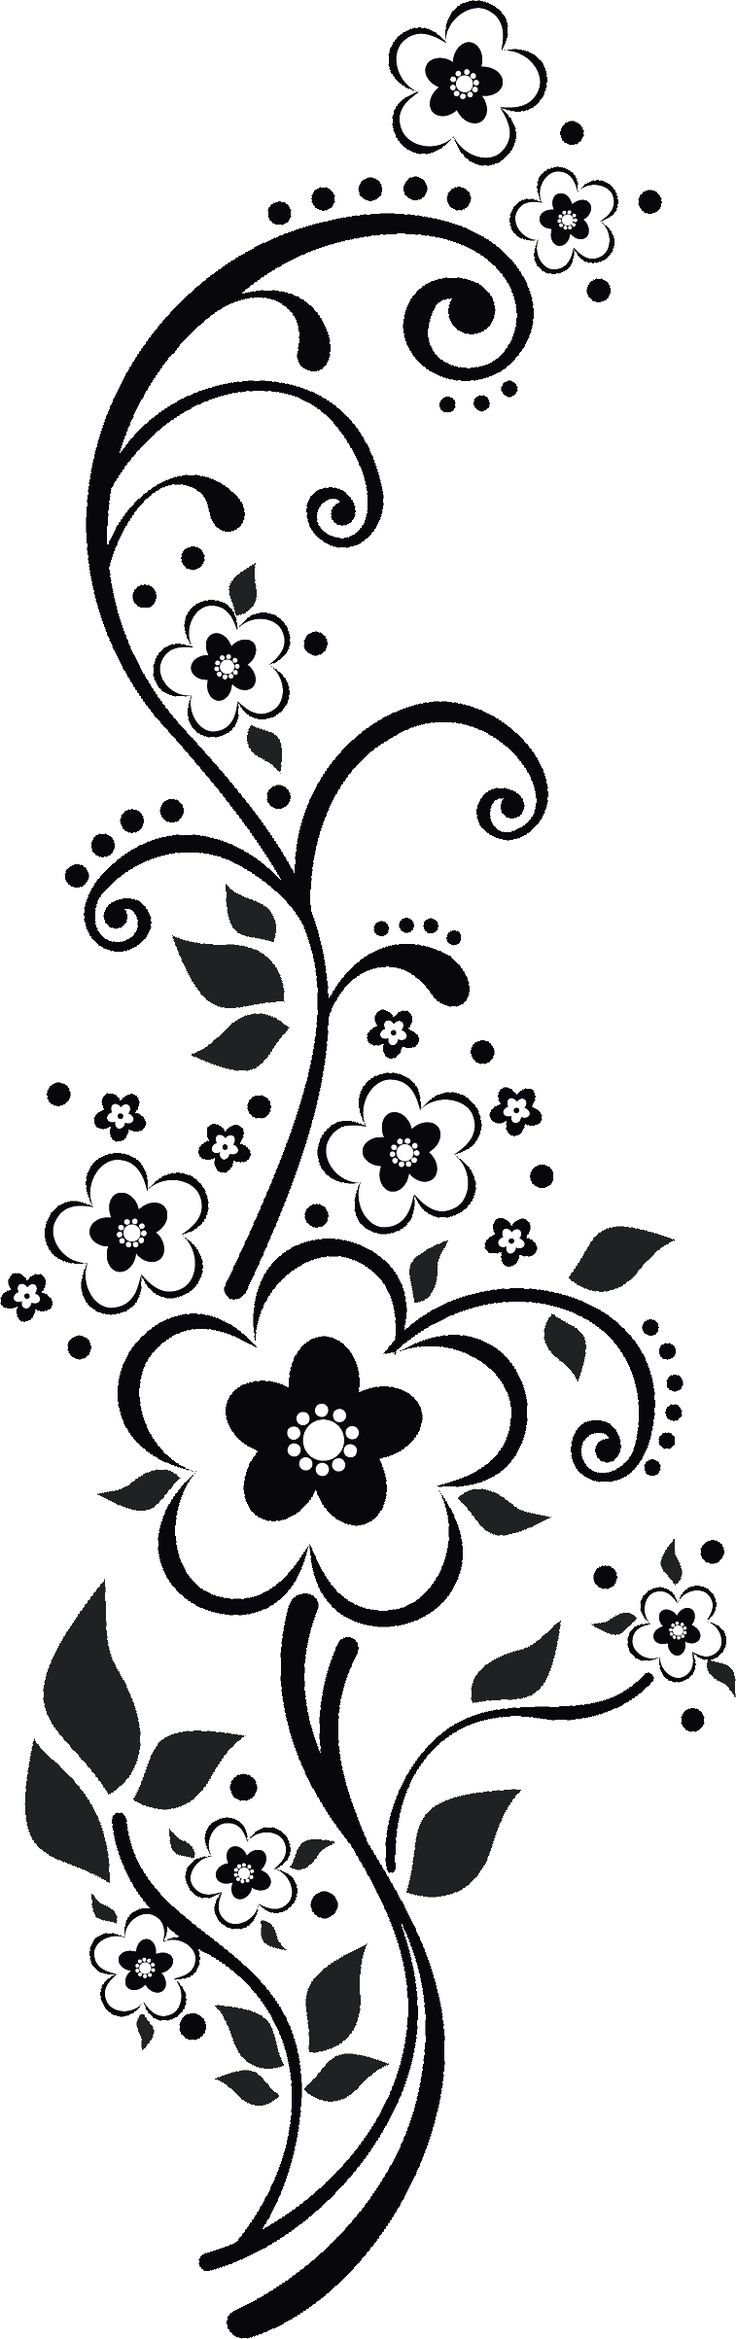 flower4937.png (757×2406)